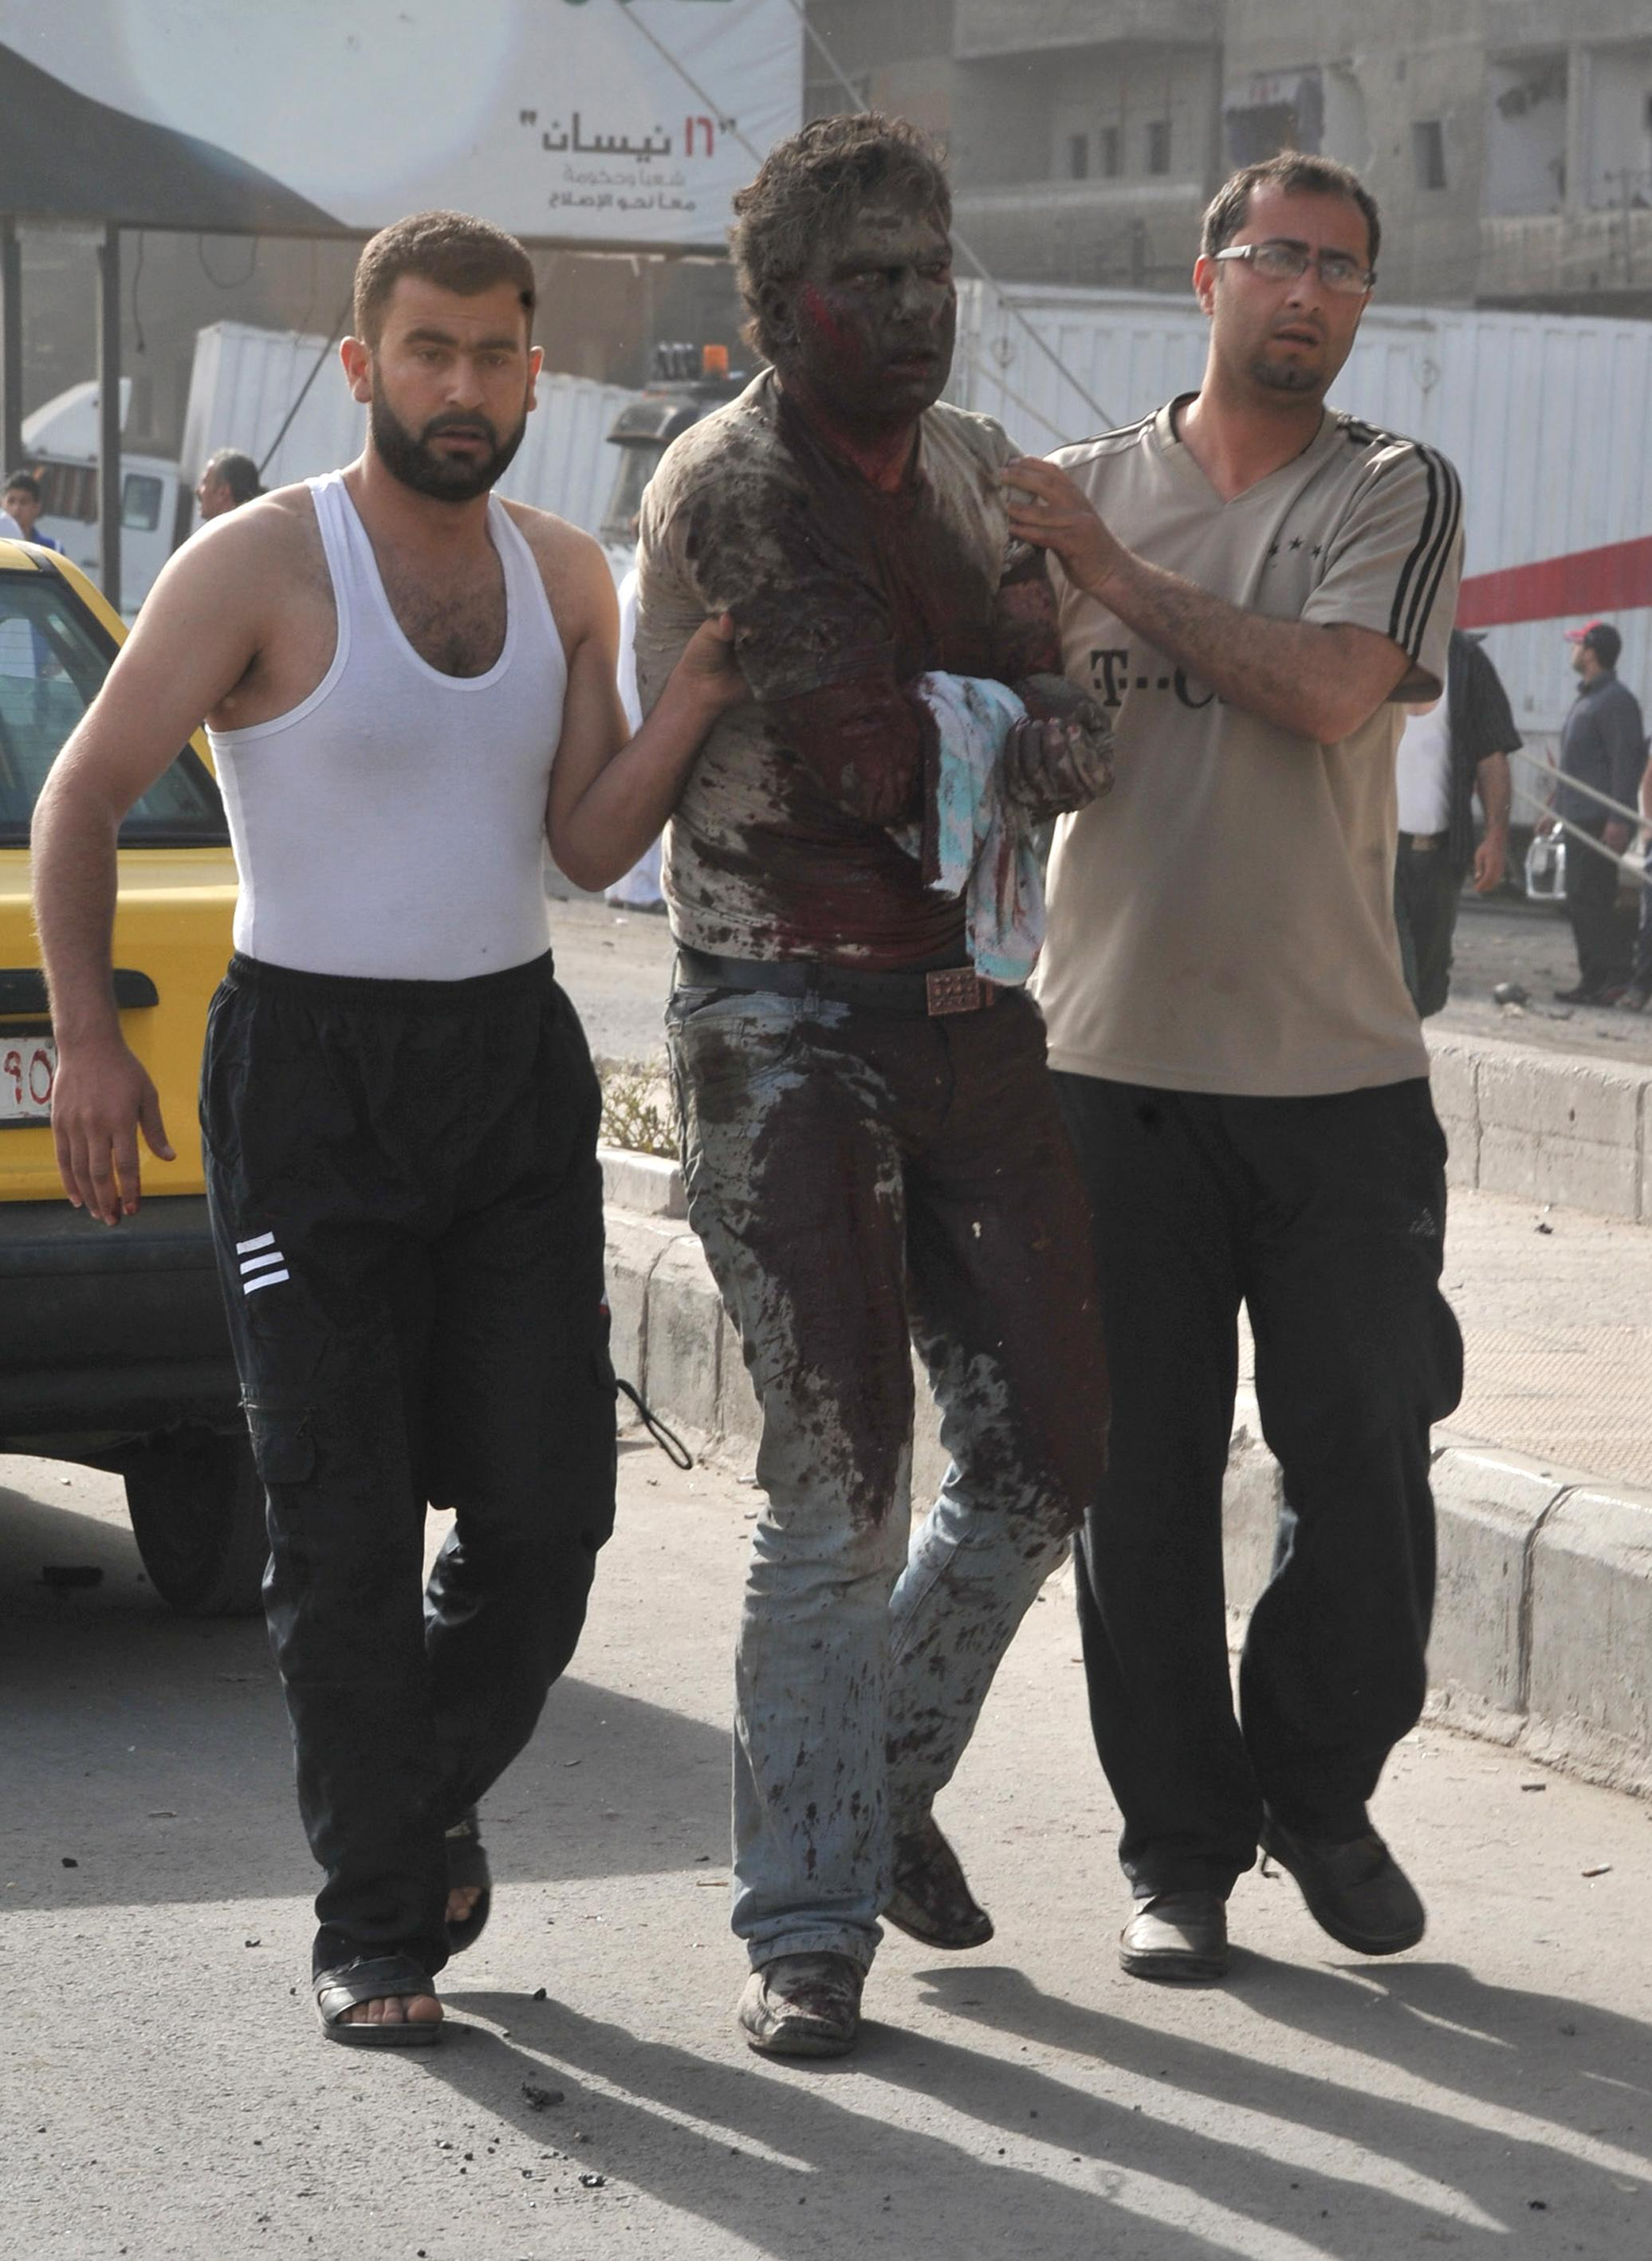 In this photo released by the Syrian official news agency SANA, Syrian citizens help an injured man after two bombs exploded, at Qazaz neighborhood in Damascus, Syria, on Thursday May 10, 2012. Two large explosions ripped through the Syrian capital Thursday, heavily damaging a military intelligence building and leaving blood and human remains in the streets. (AP Photo/SANA)